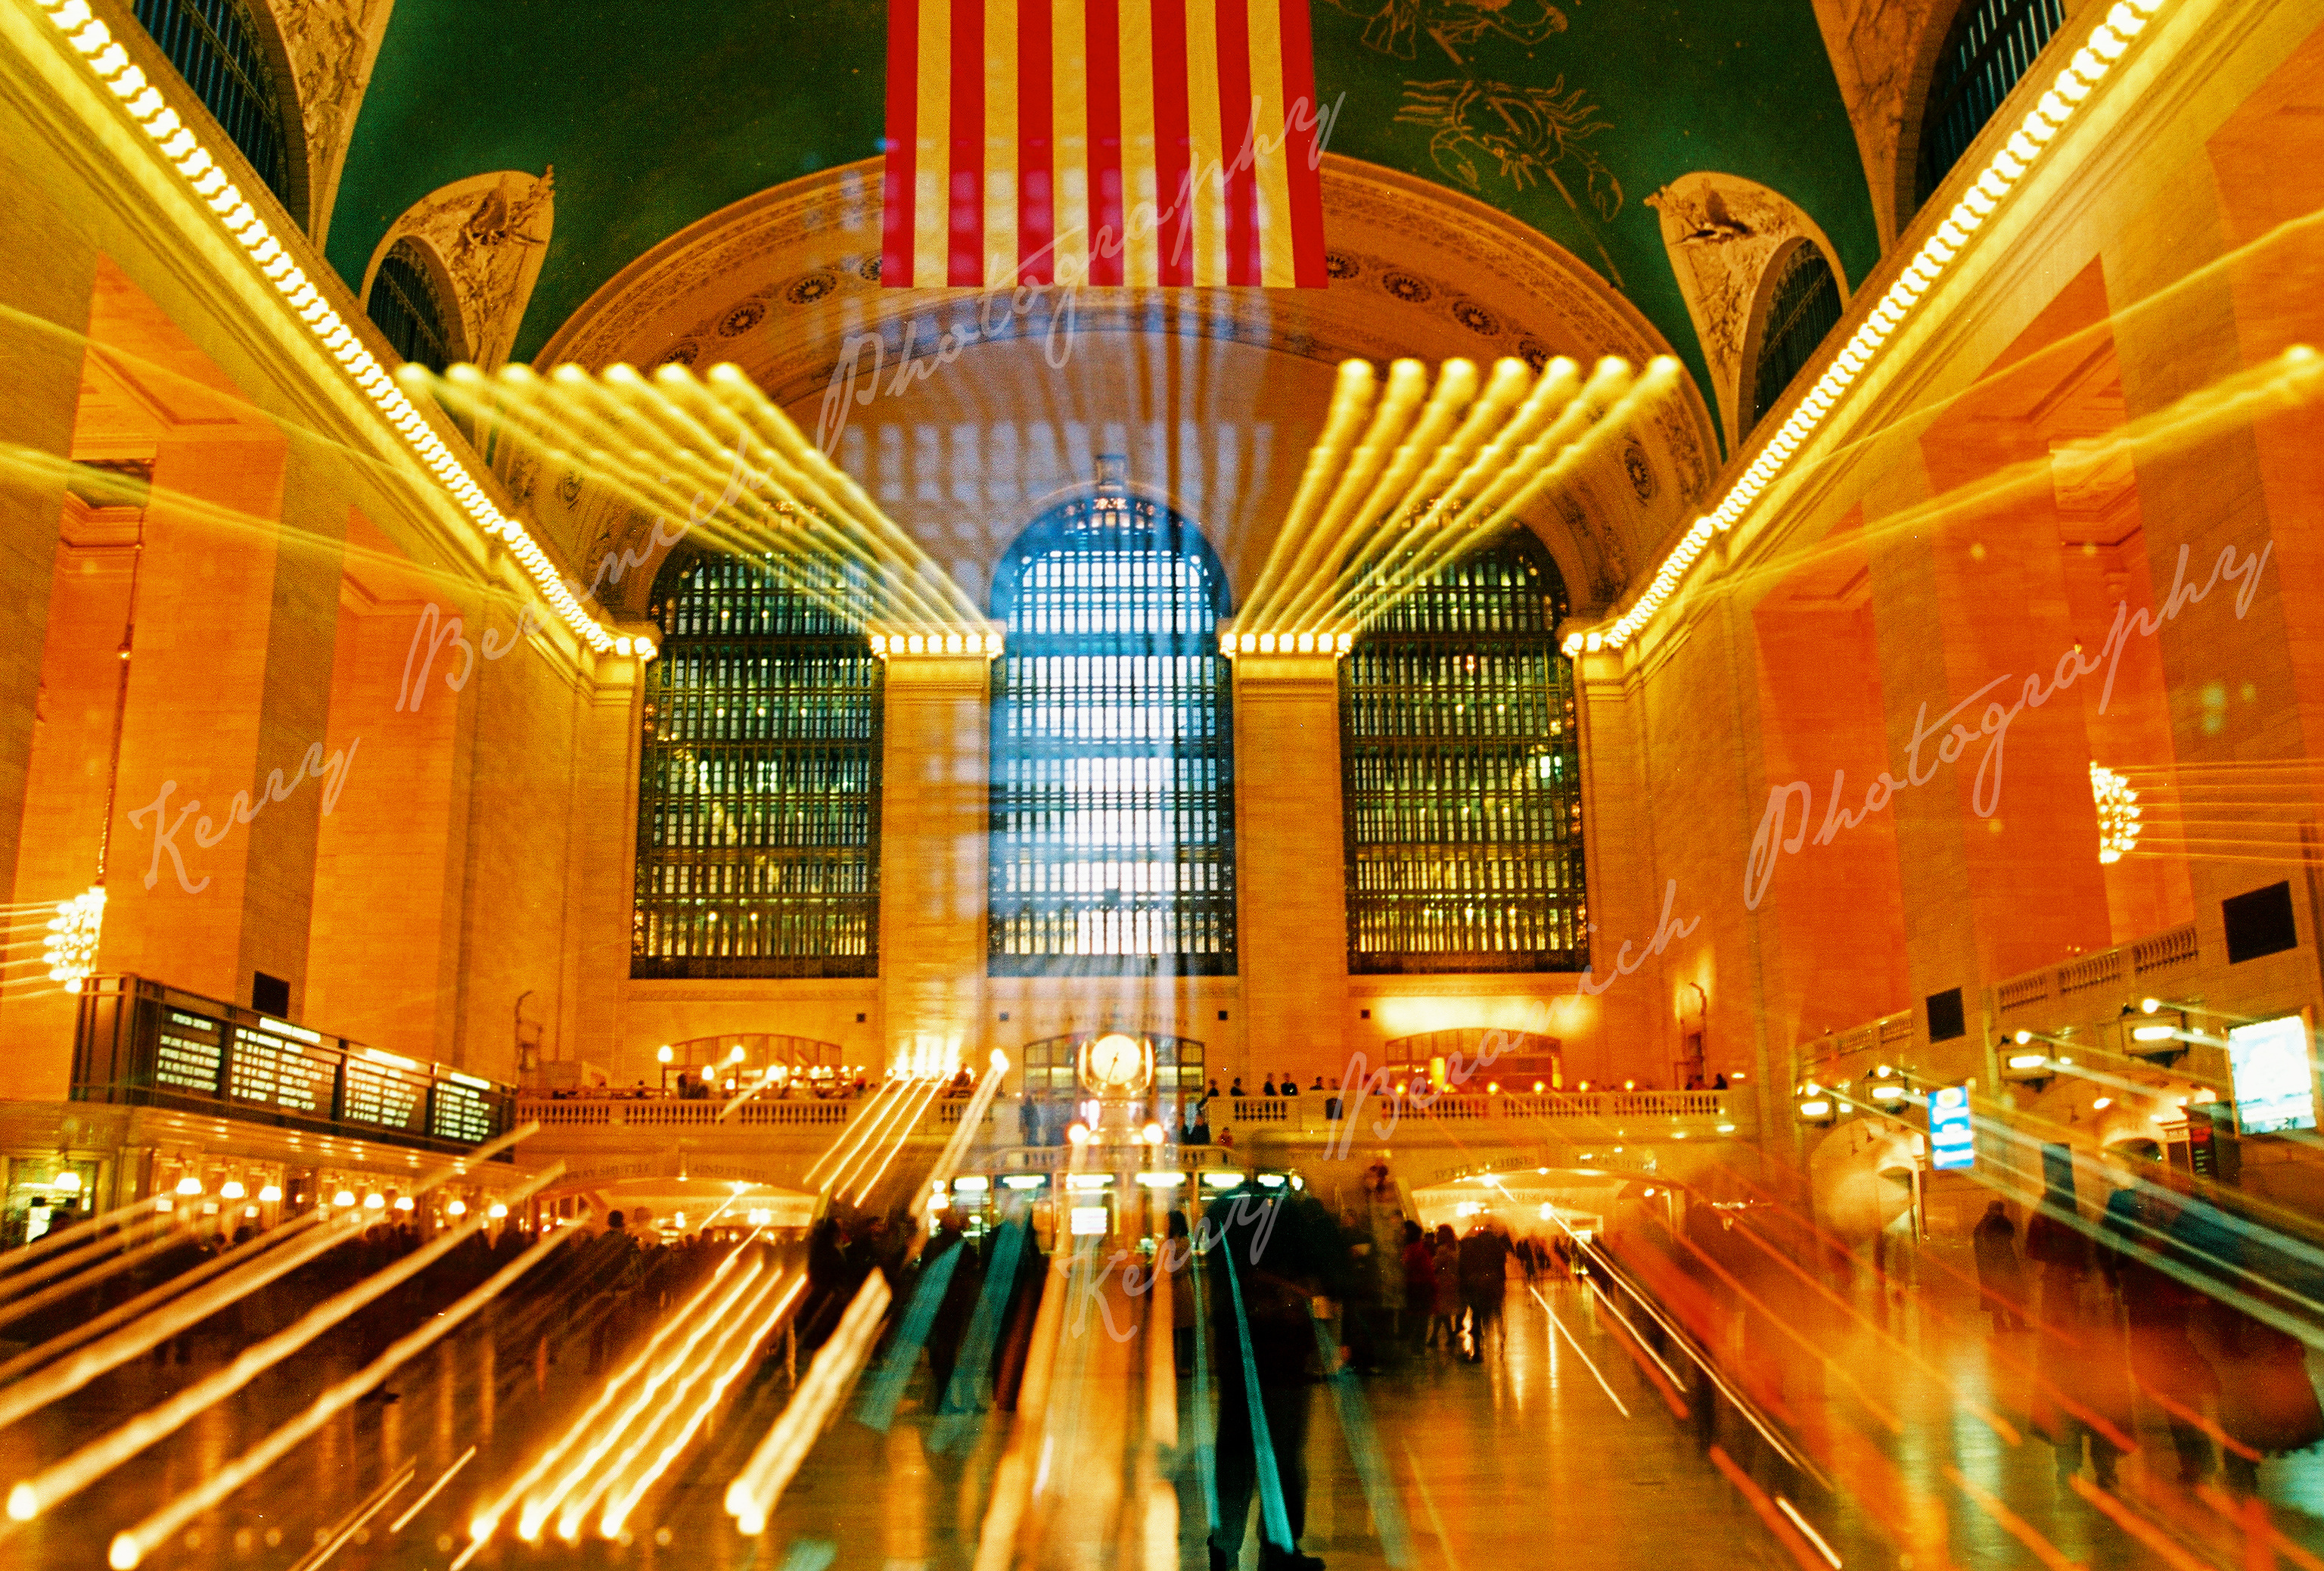 Grand Central station watermark